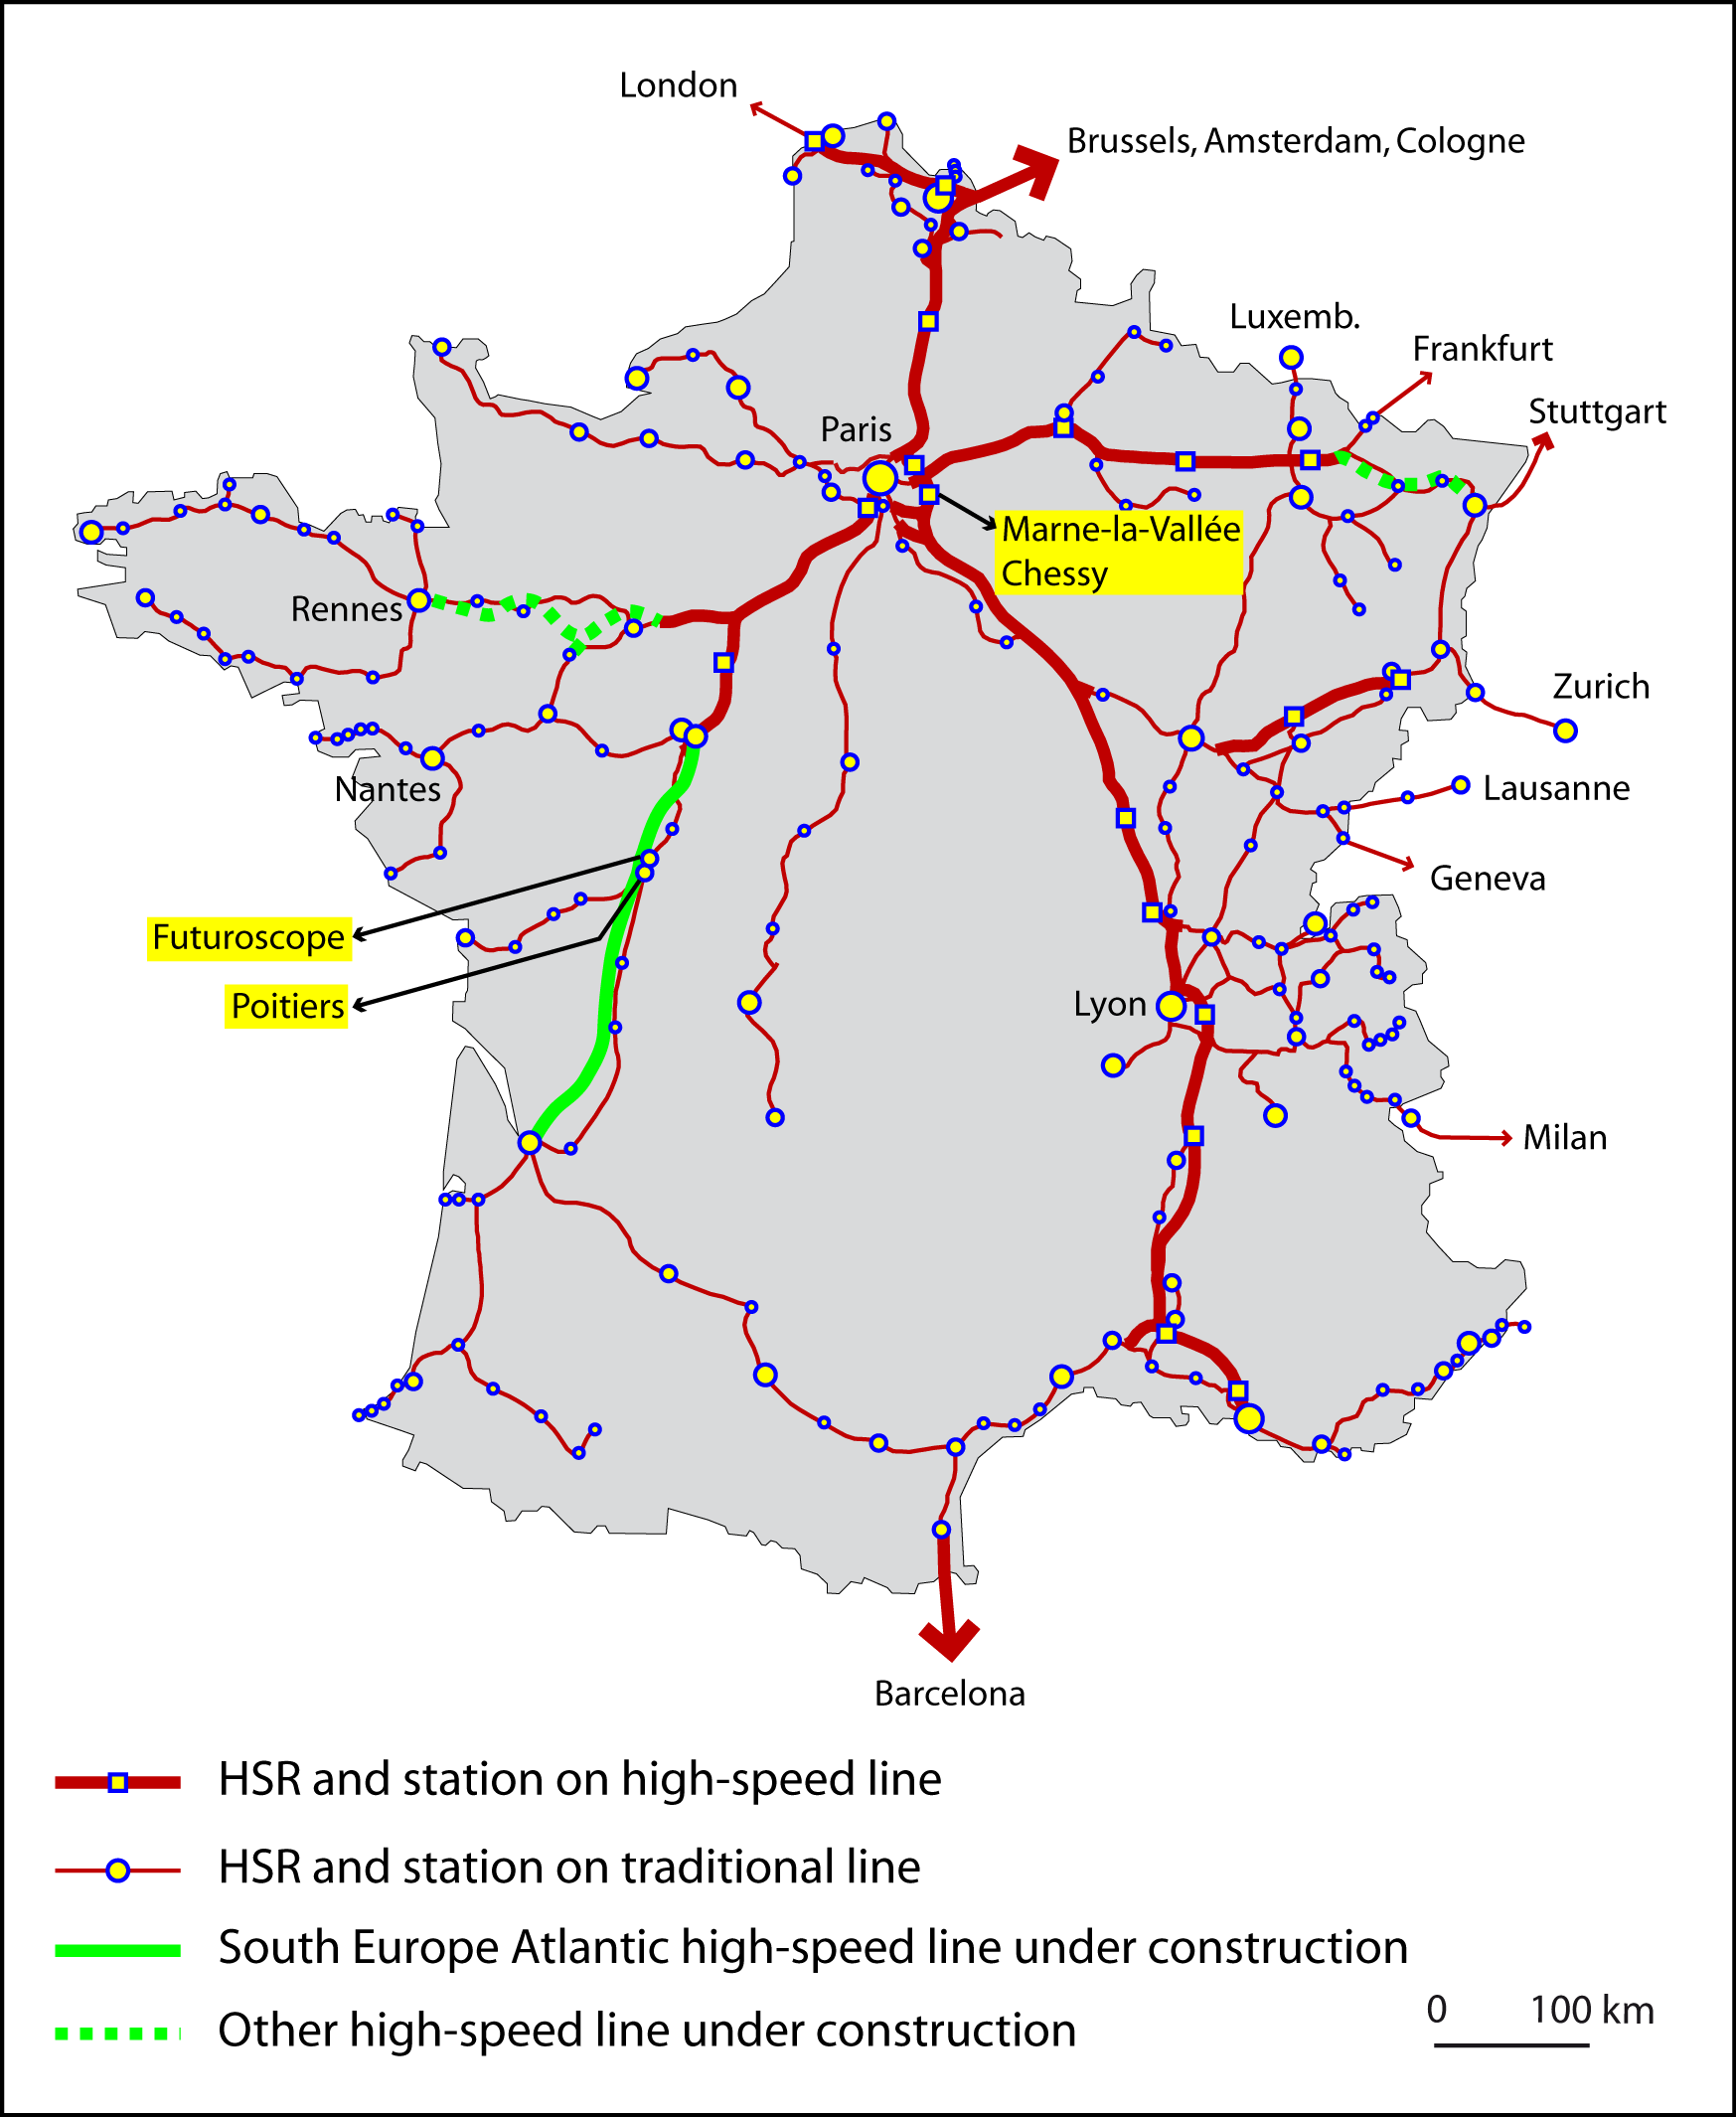 Does High Speed Rail Affect Destination Choice For Tourism